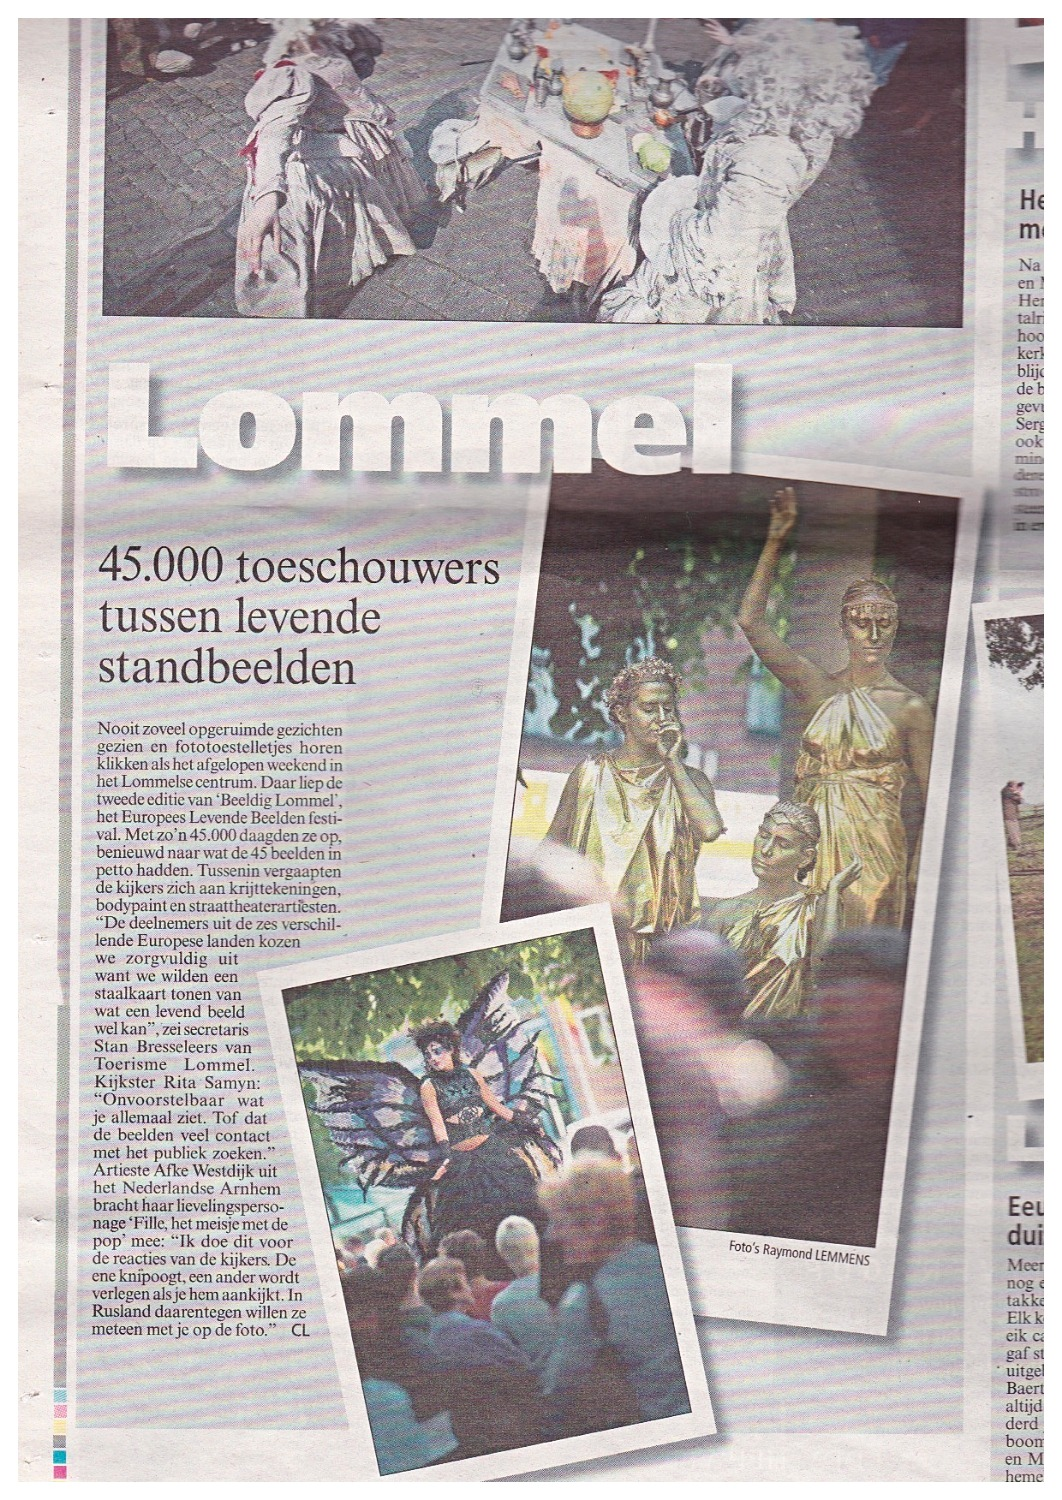 Journal du Festival de Lommel